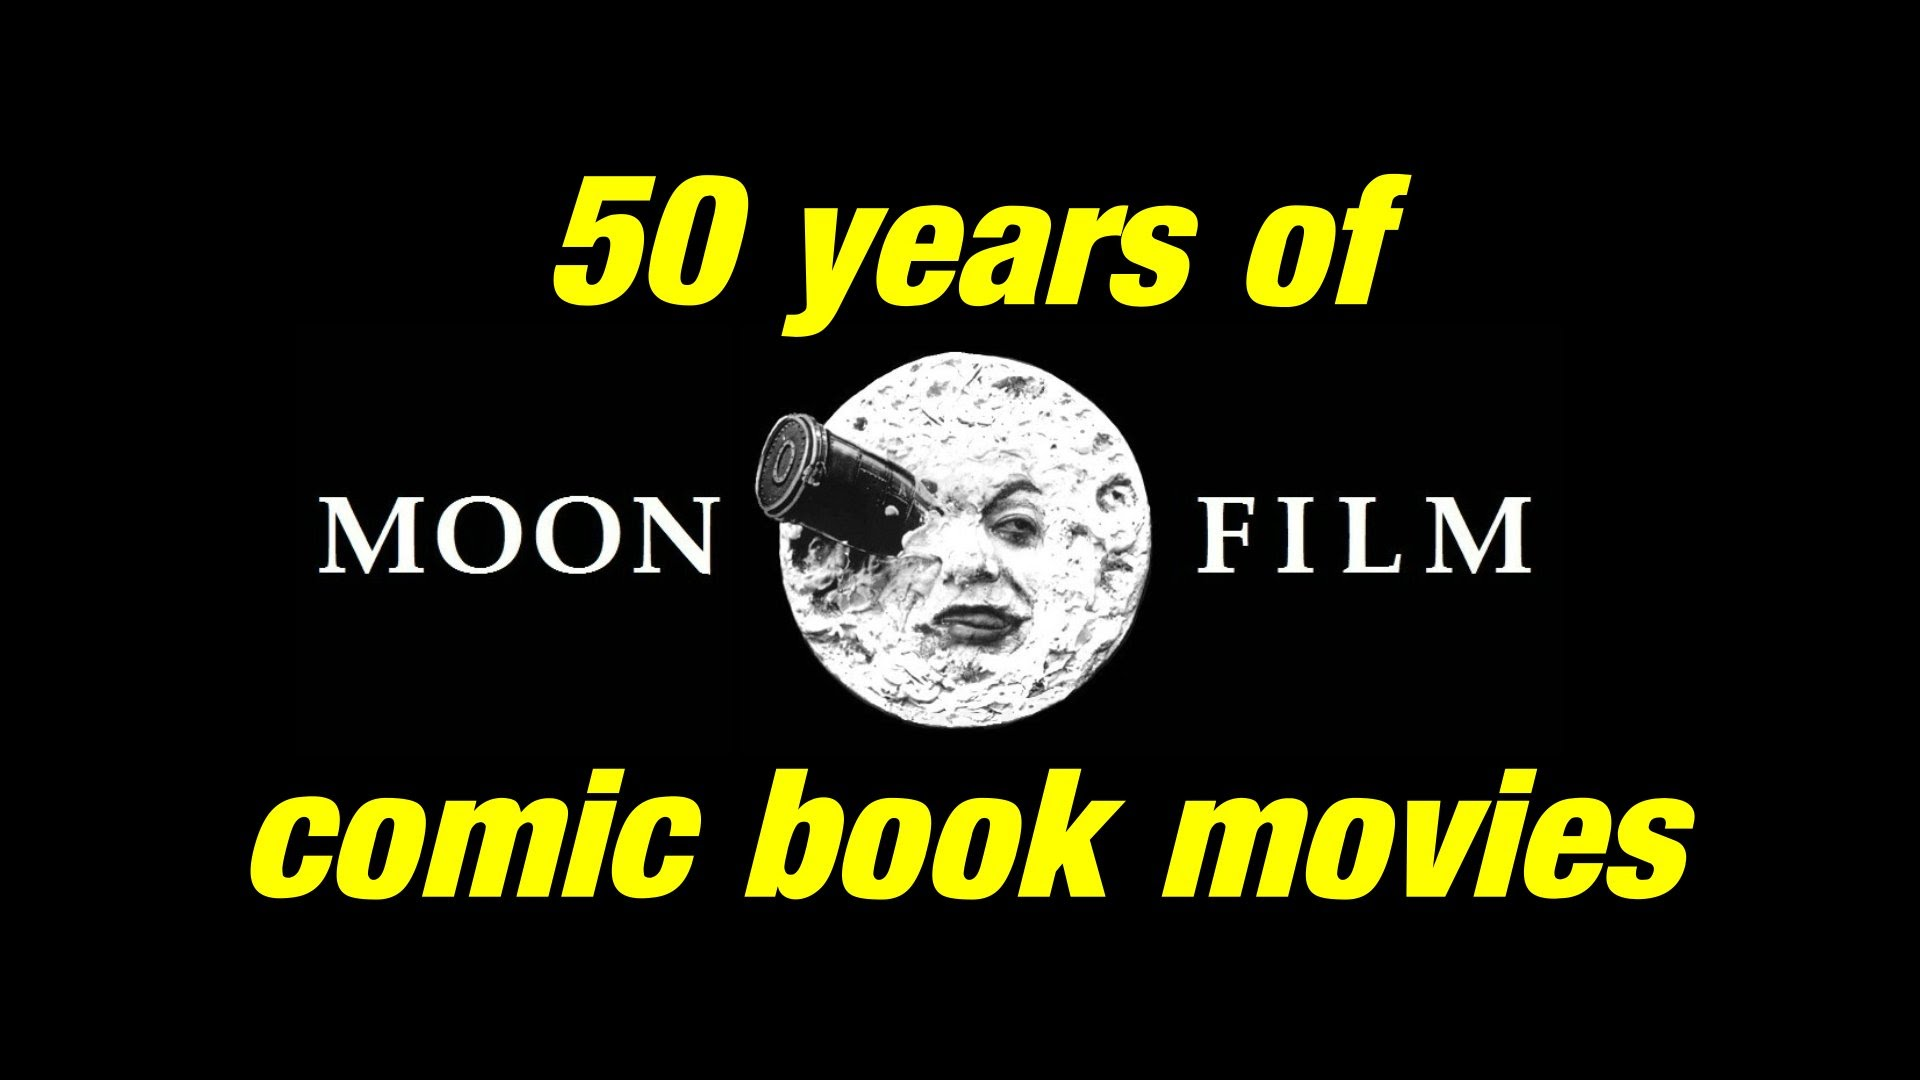 50 Years of Comic Book Movies